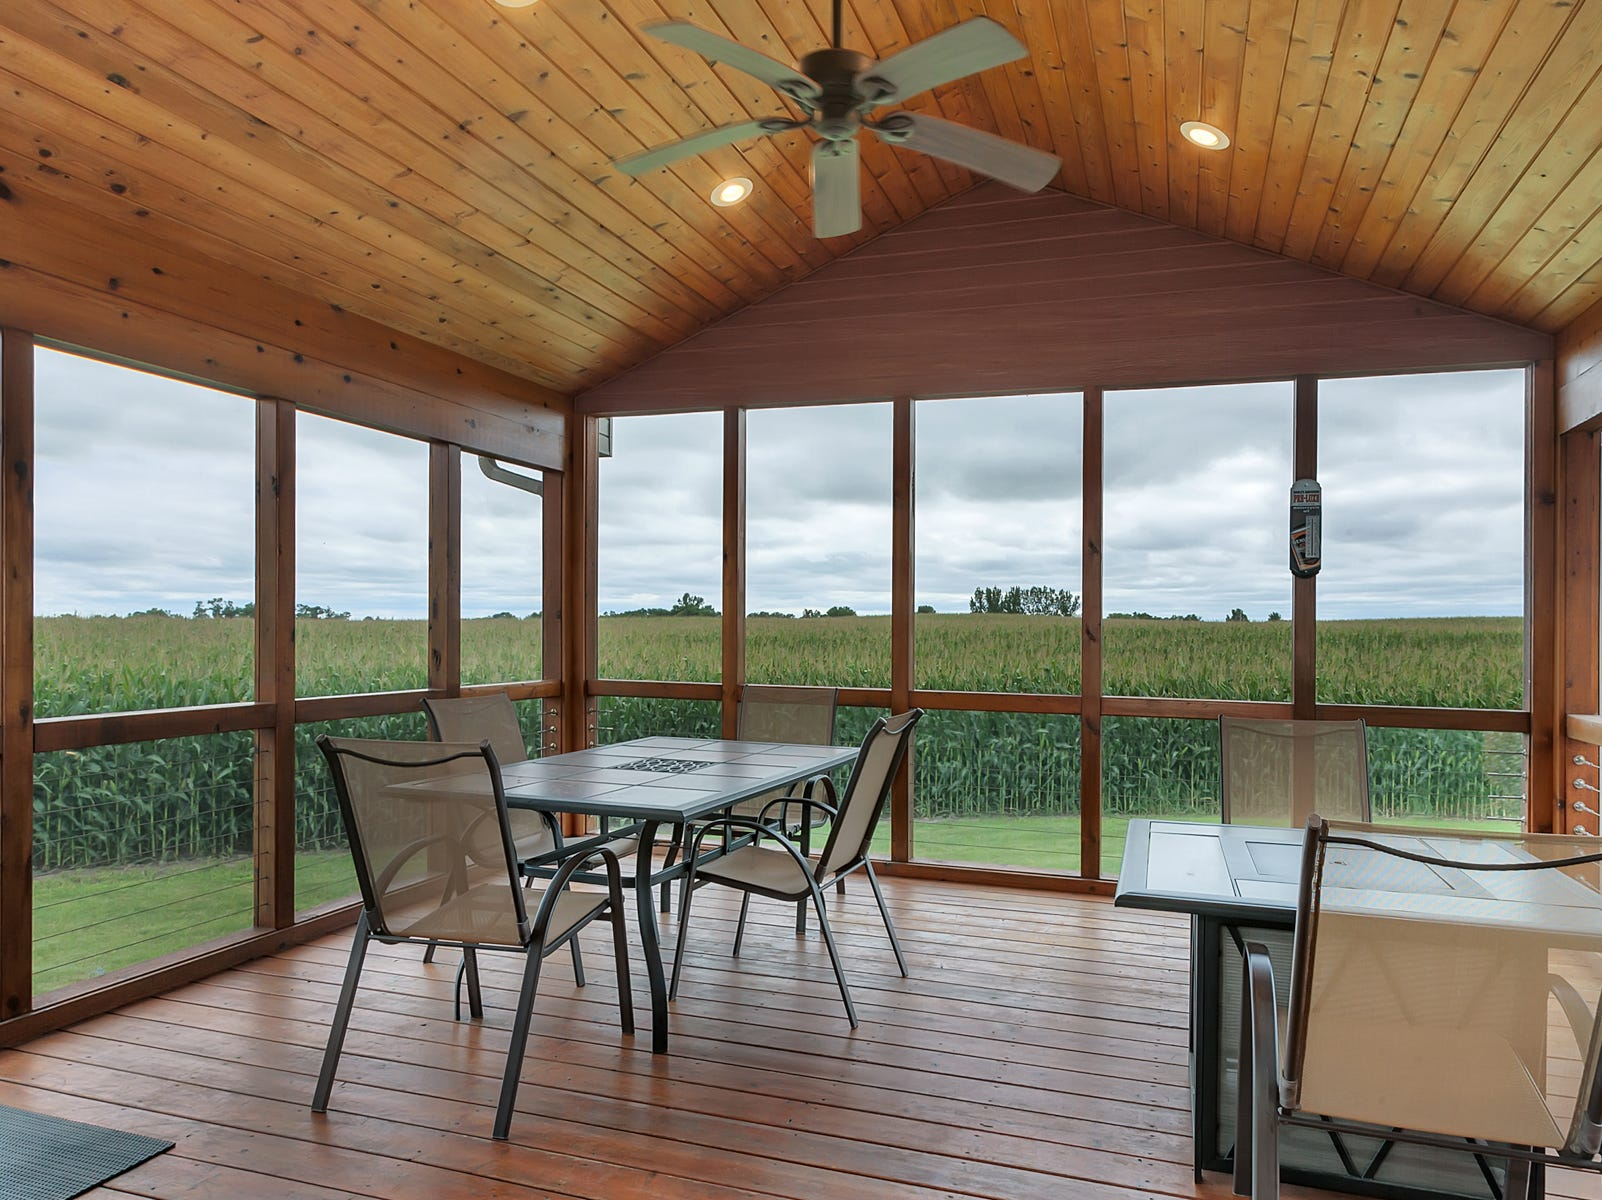 Off the kitchen and the dining room is a comfortable fully screened-in porch likely to be one of the most used spaces in the home three out of the four seasons of the year.